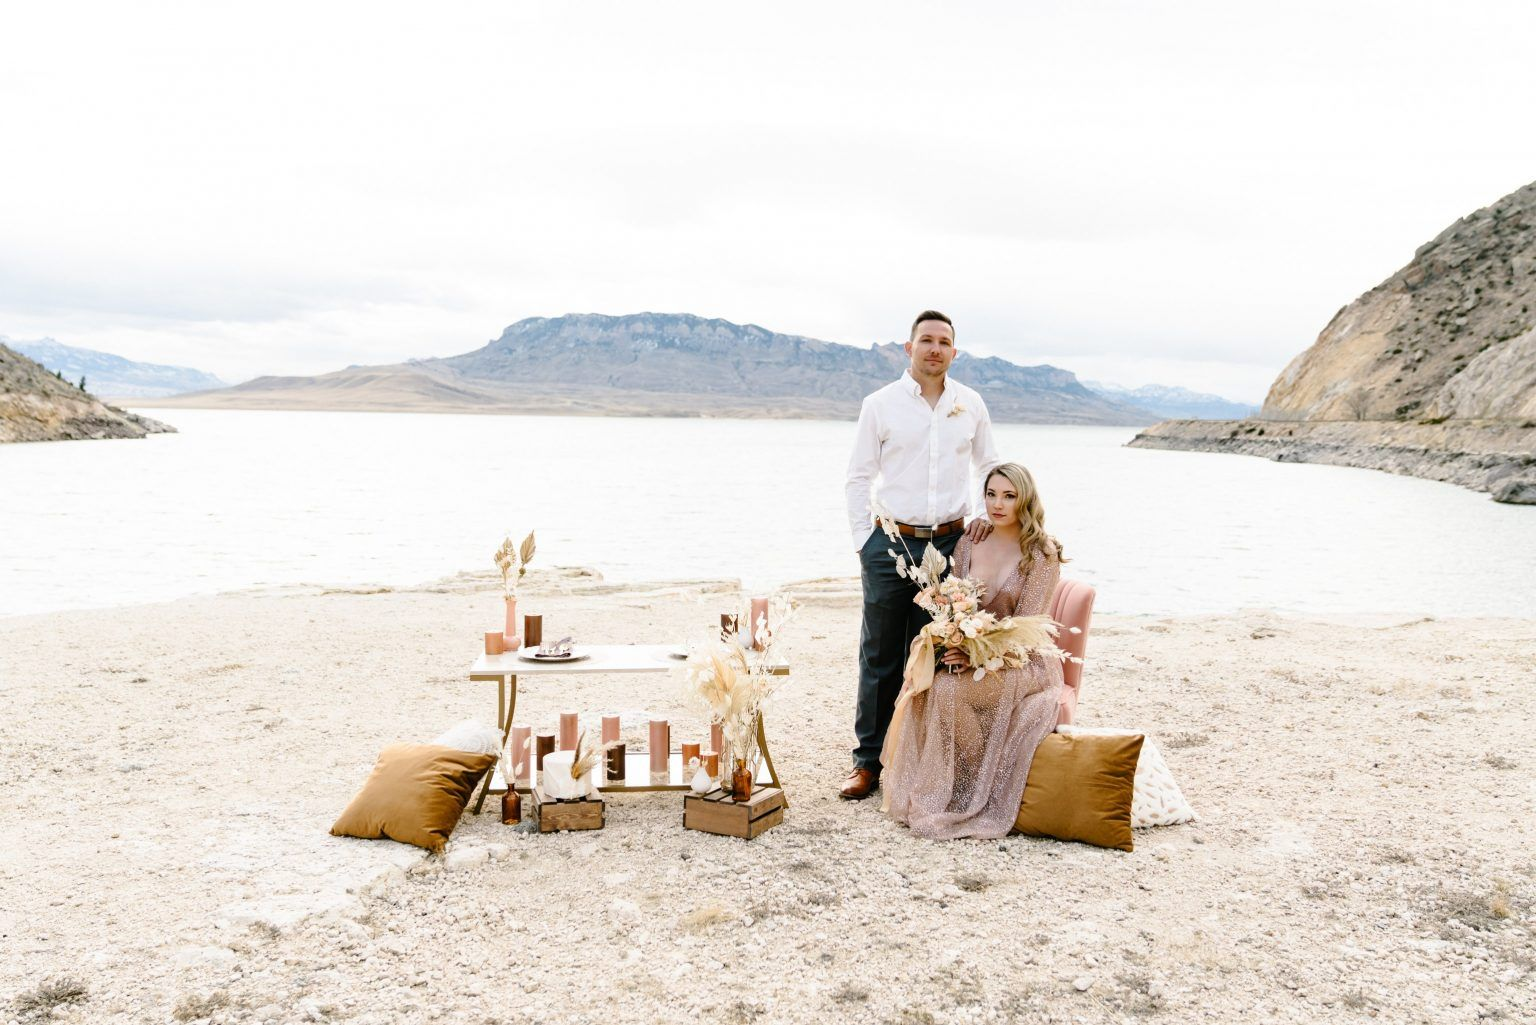 Dusty Pink Wyoming Elopement Inspiration Rocky Mountain